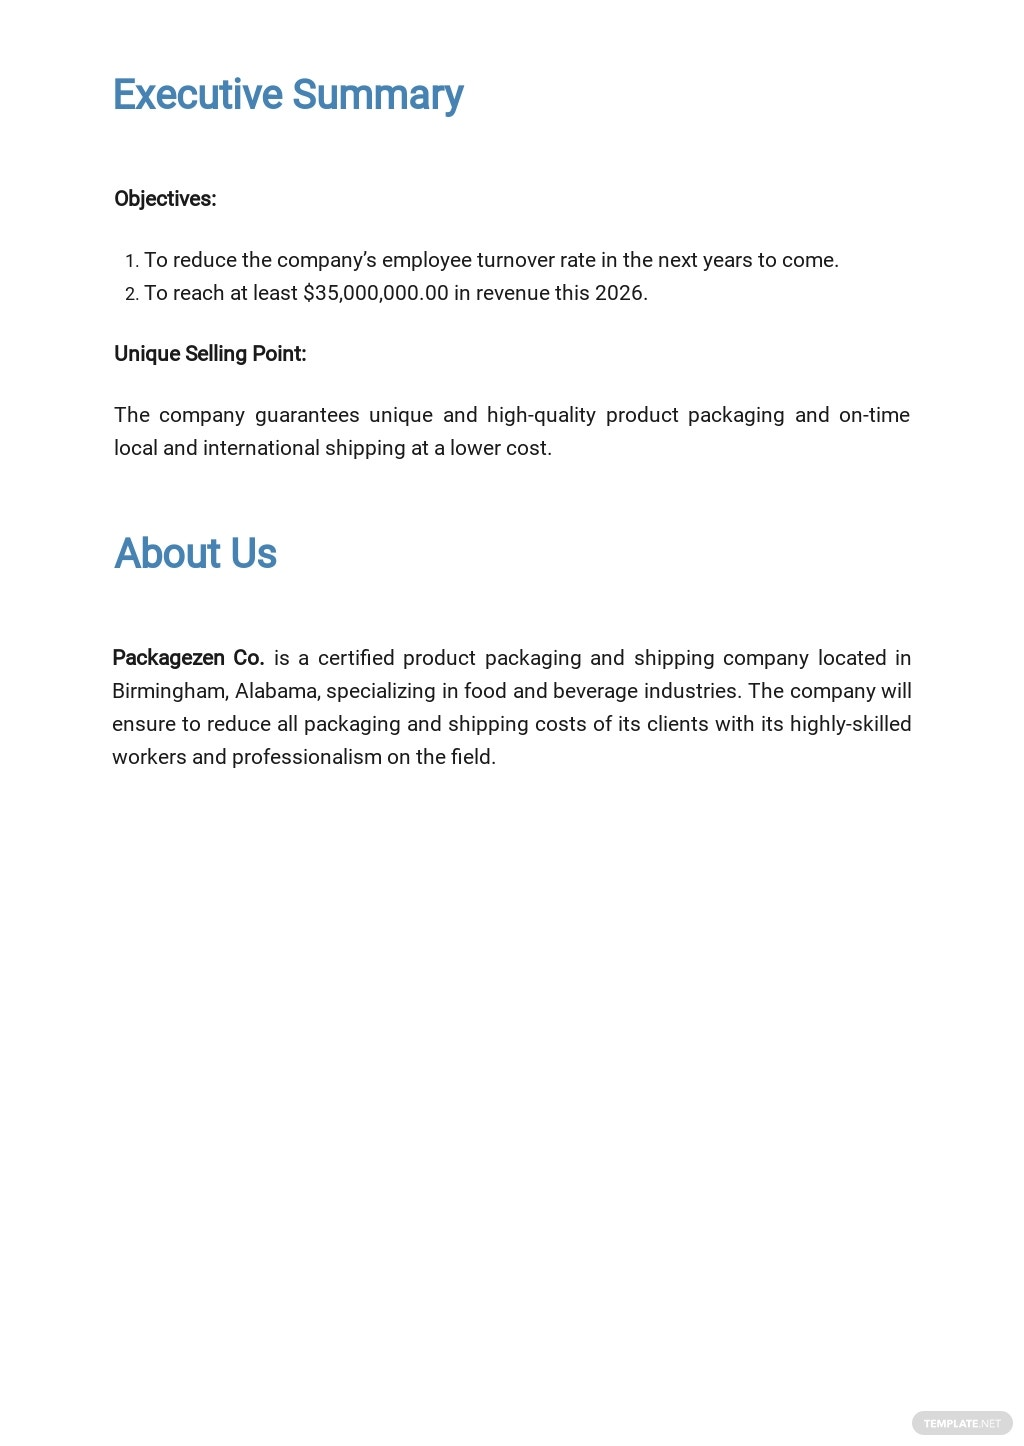 Packaging and Shipping Business Plan Template 1.jpe